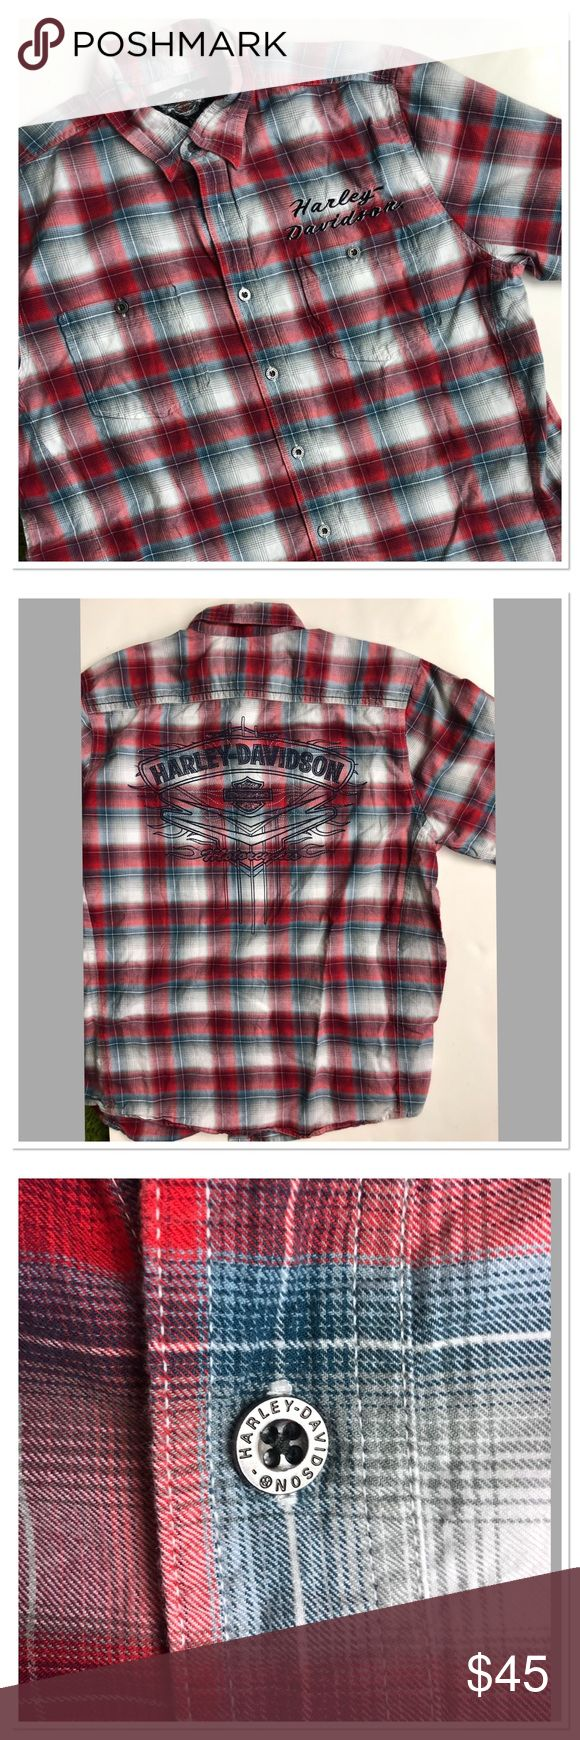 """Harley Davidson Plaid cotton button down shirt Harley Davidson Genuine Motor clothes cotton button down shirt with short sleeves. Featuring front buttons closure, embroidered logo on the left side of the chest, motorcycle logo on the right side of the shirt. Big square embroidery on the back. Black and red white and blue plaid colors. Very good pre owned condition, no flaws. Size L. Pit to pit 22"""" length 29"""" Harley-Davidson Shirts Casual Button Down Shirts"""